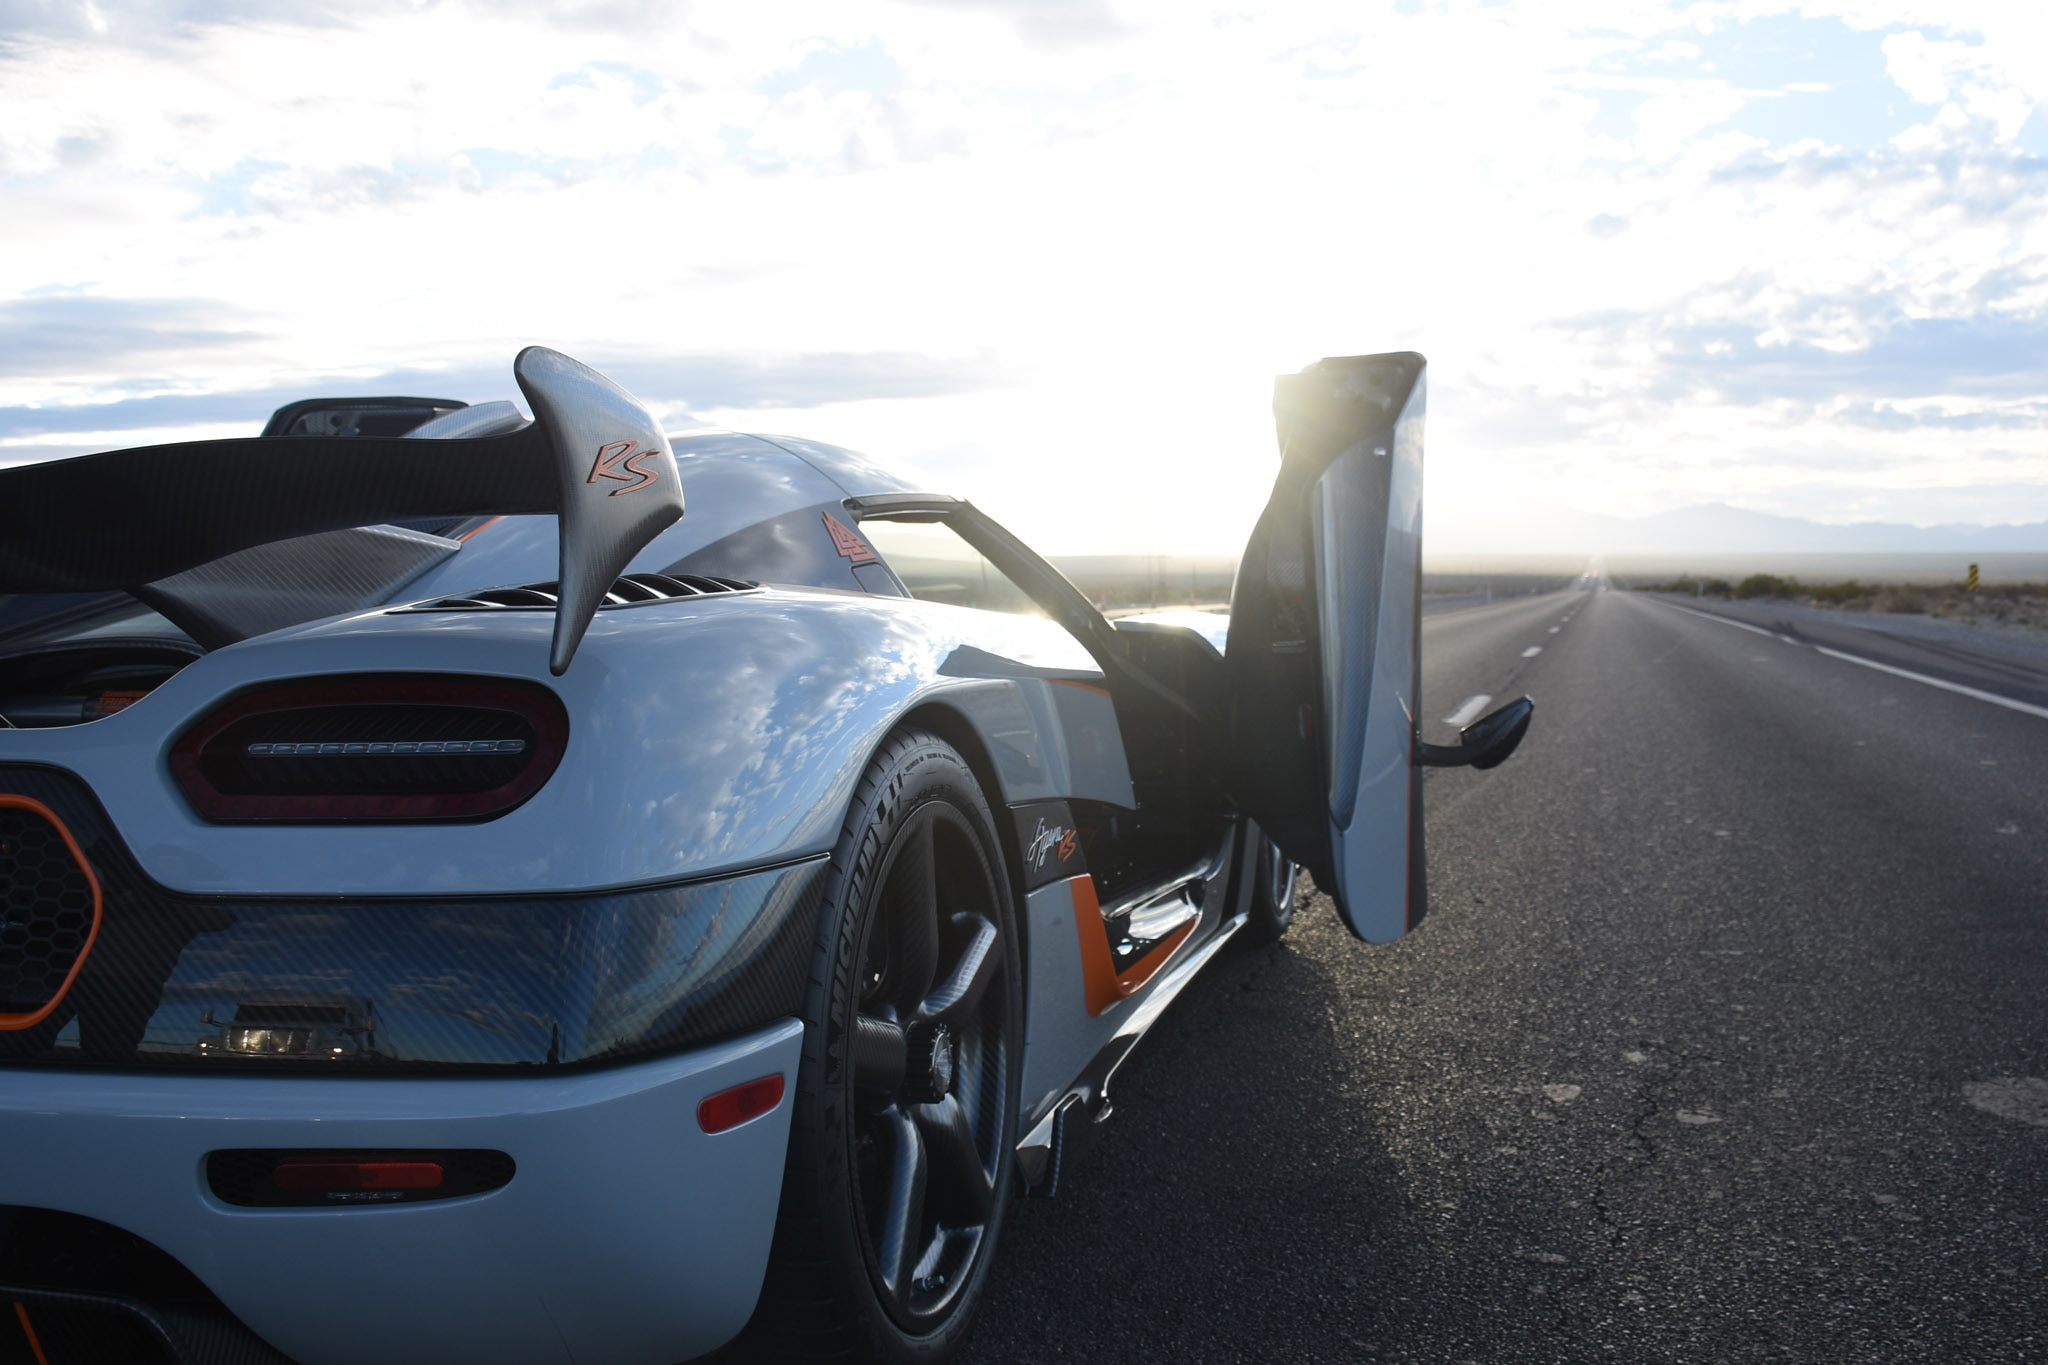 After our run down the twelve miles of Highway 160\u0027s closed test track I exited the Koenigsegg\u0027s dihedral synchro-helix doors grinning as if I had just ... & Our Exclusive Ride in an Koenigsegg Agera RS on a Closed Nevada Road ...